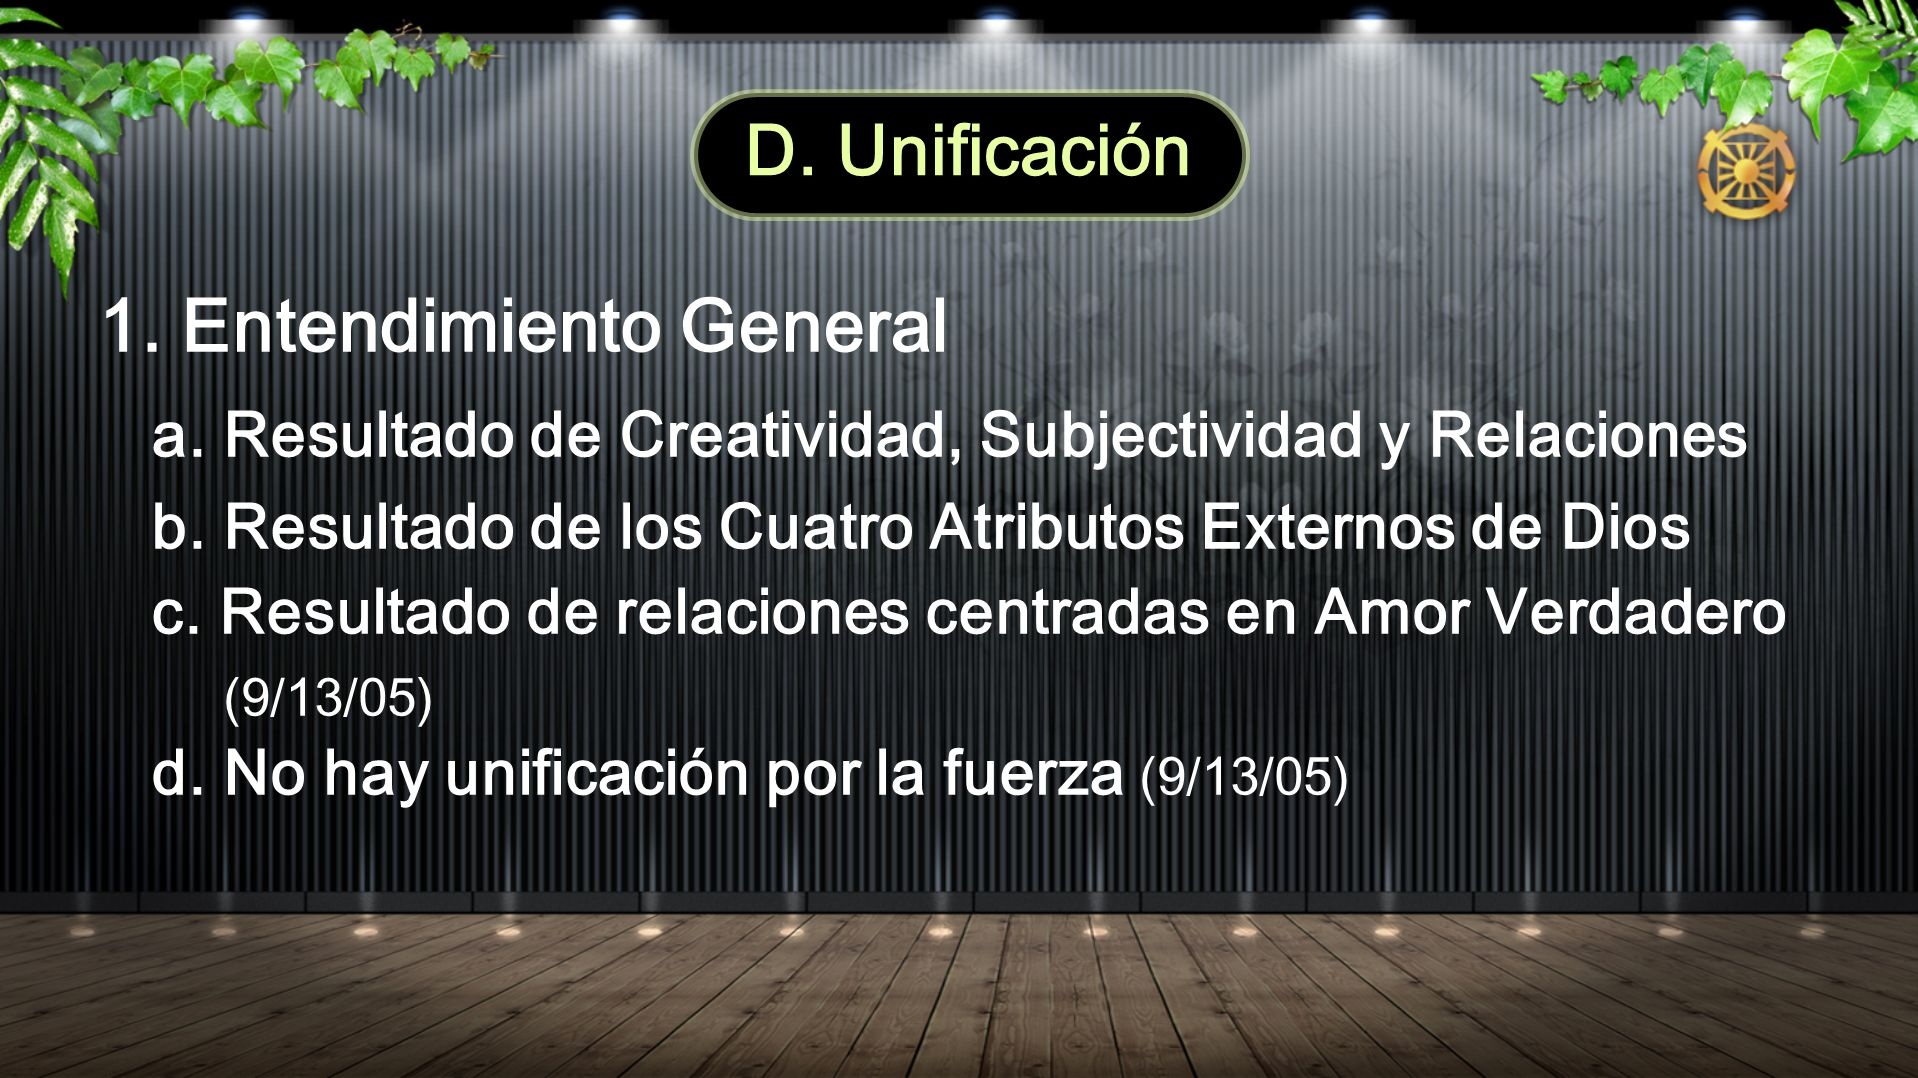 1. Entendimiento General